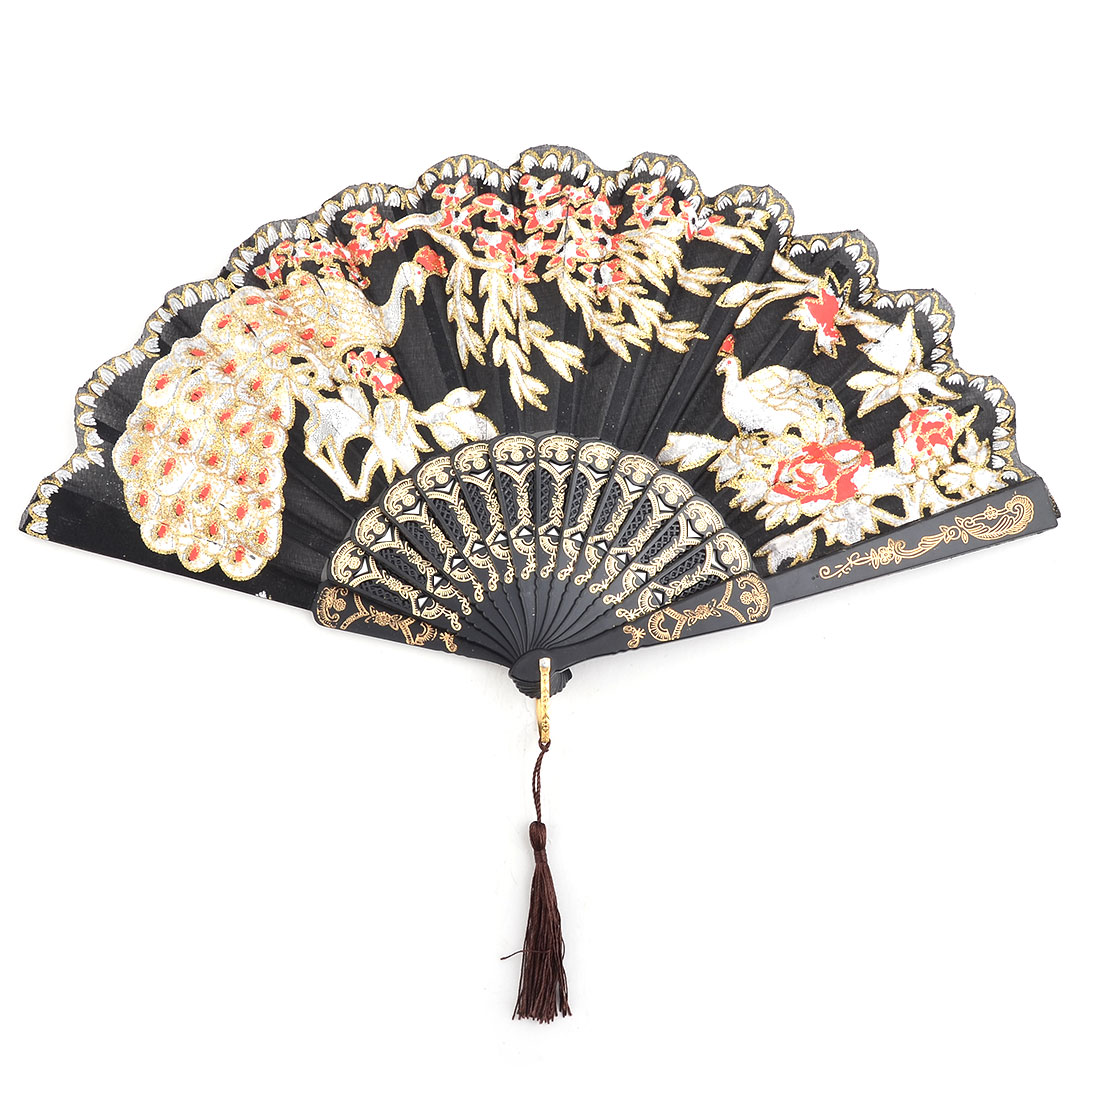 Dancer Plastic Peacock Pattern Folding Dancing Cooling Hand Fan Black 24cm Length